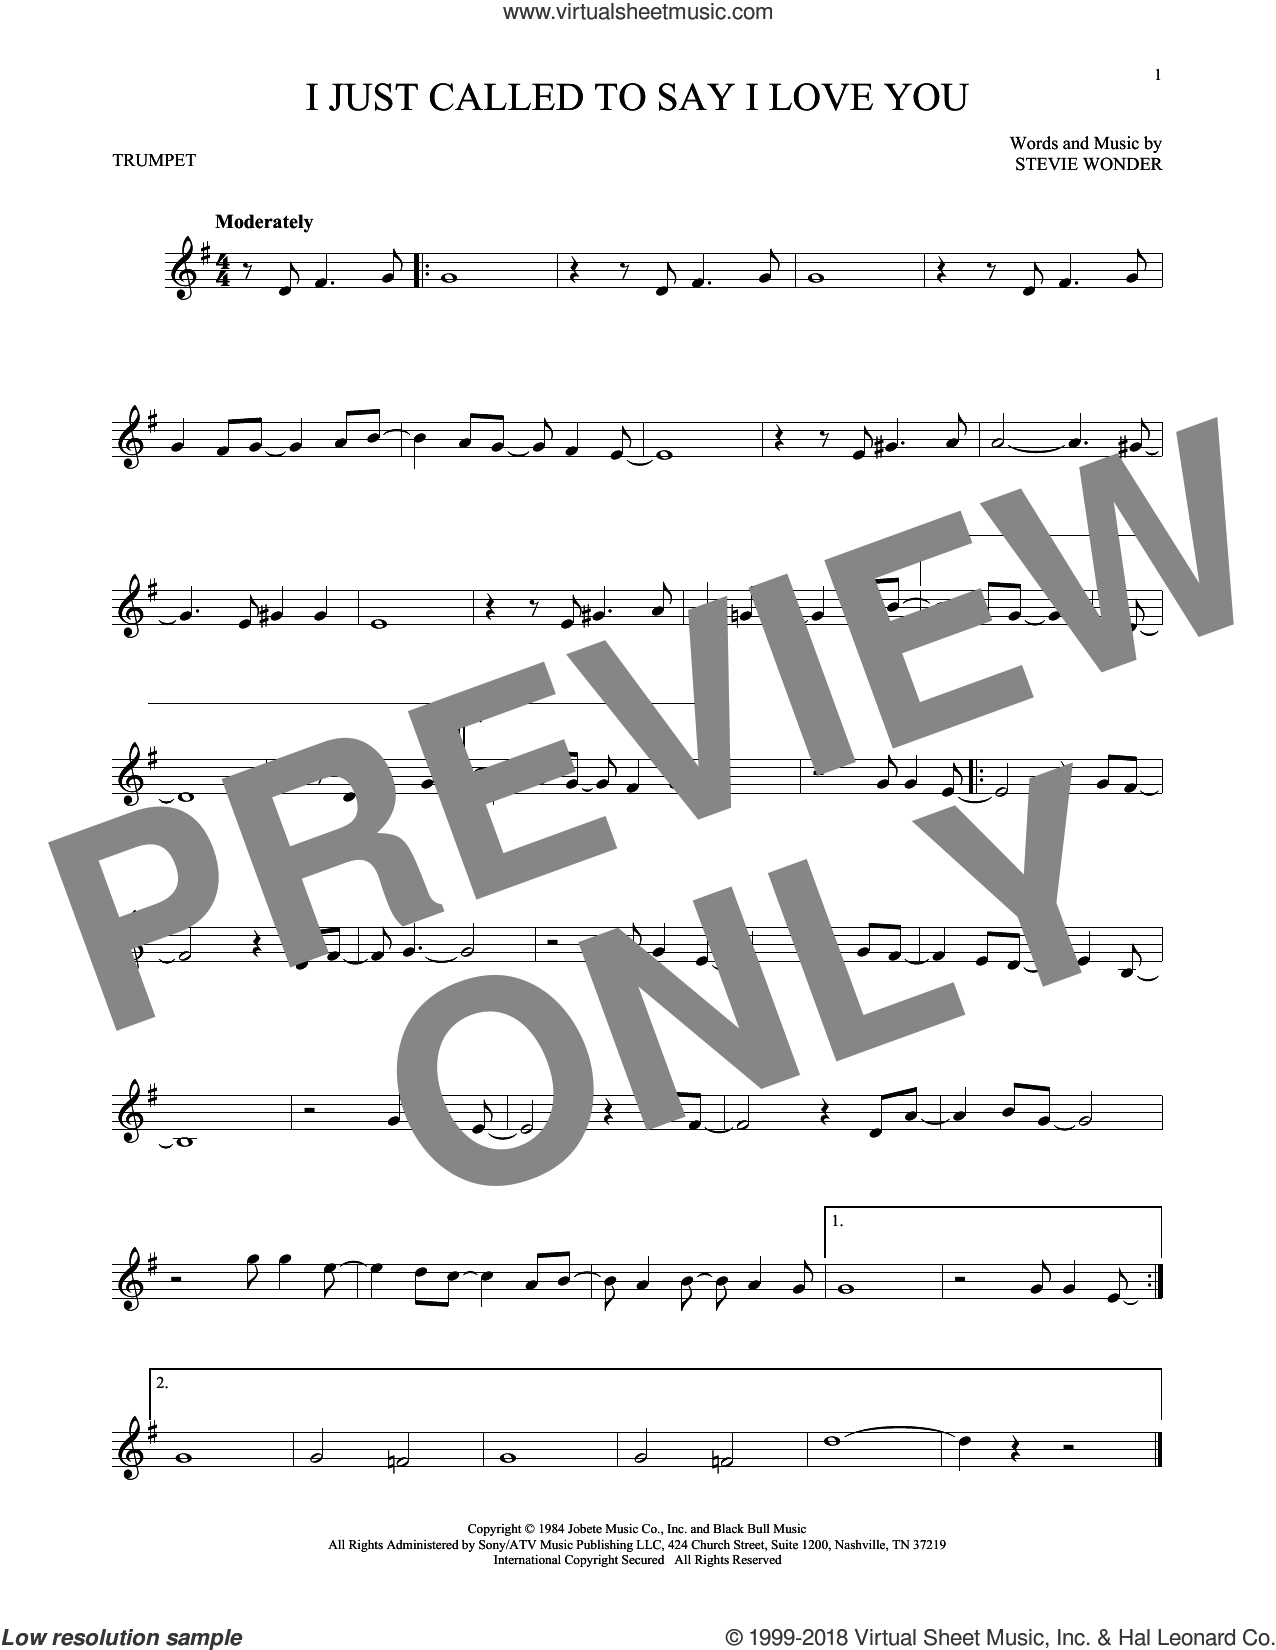 I Just Called To Say I Love You sheet music for trumpet solo by Stevie Wonder, intermediate skill level